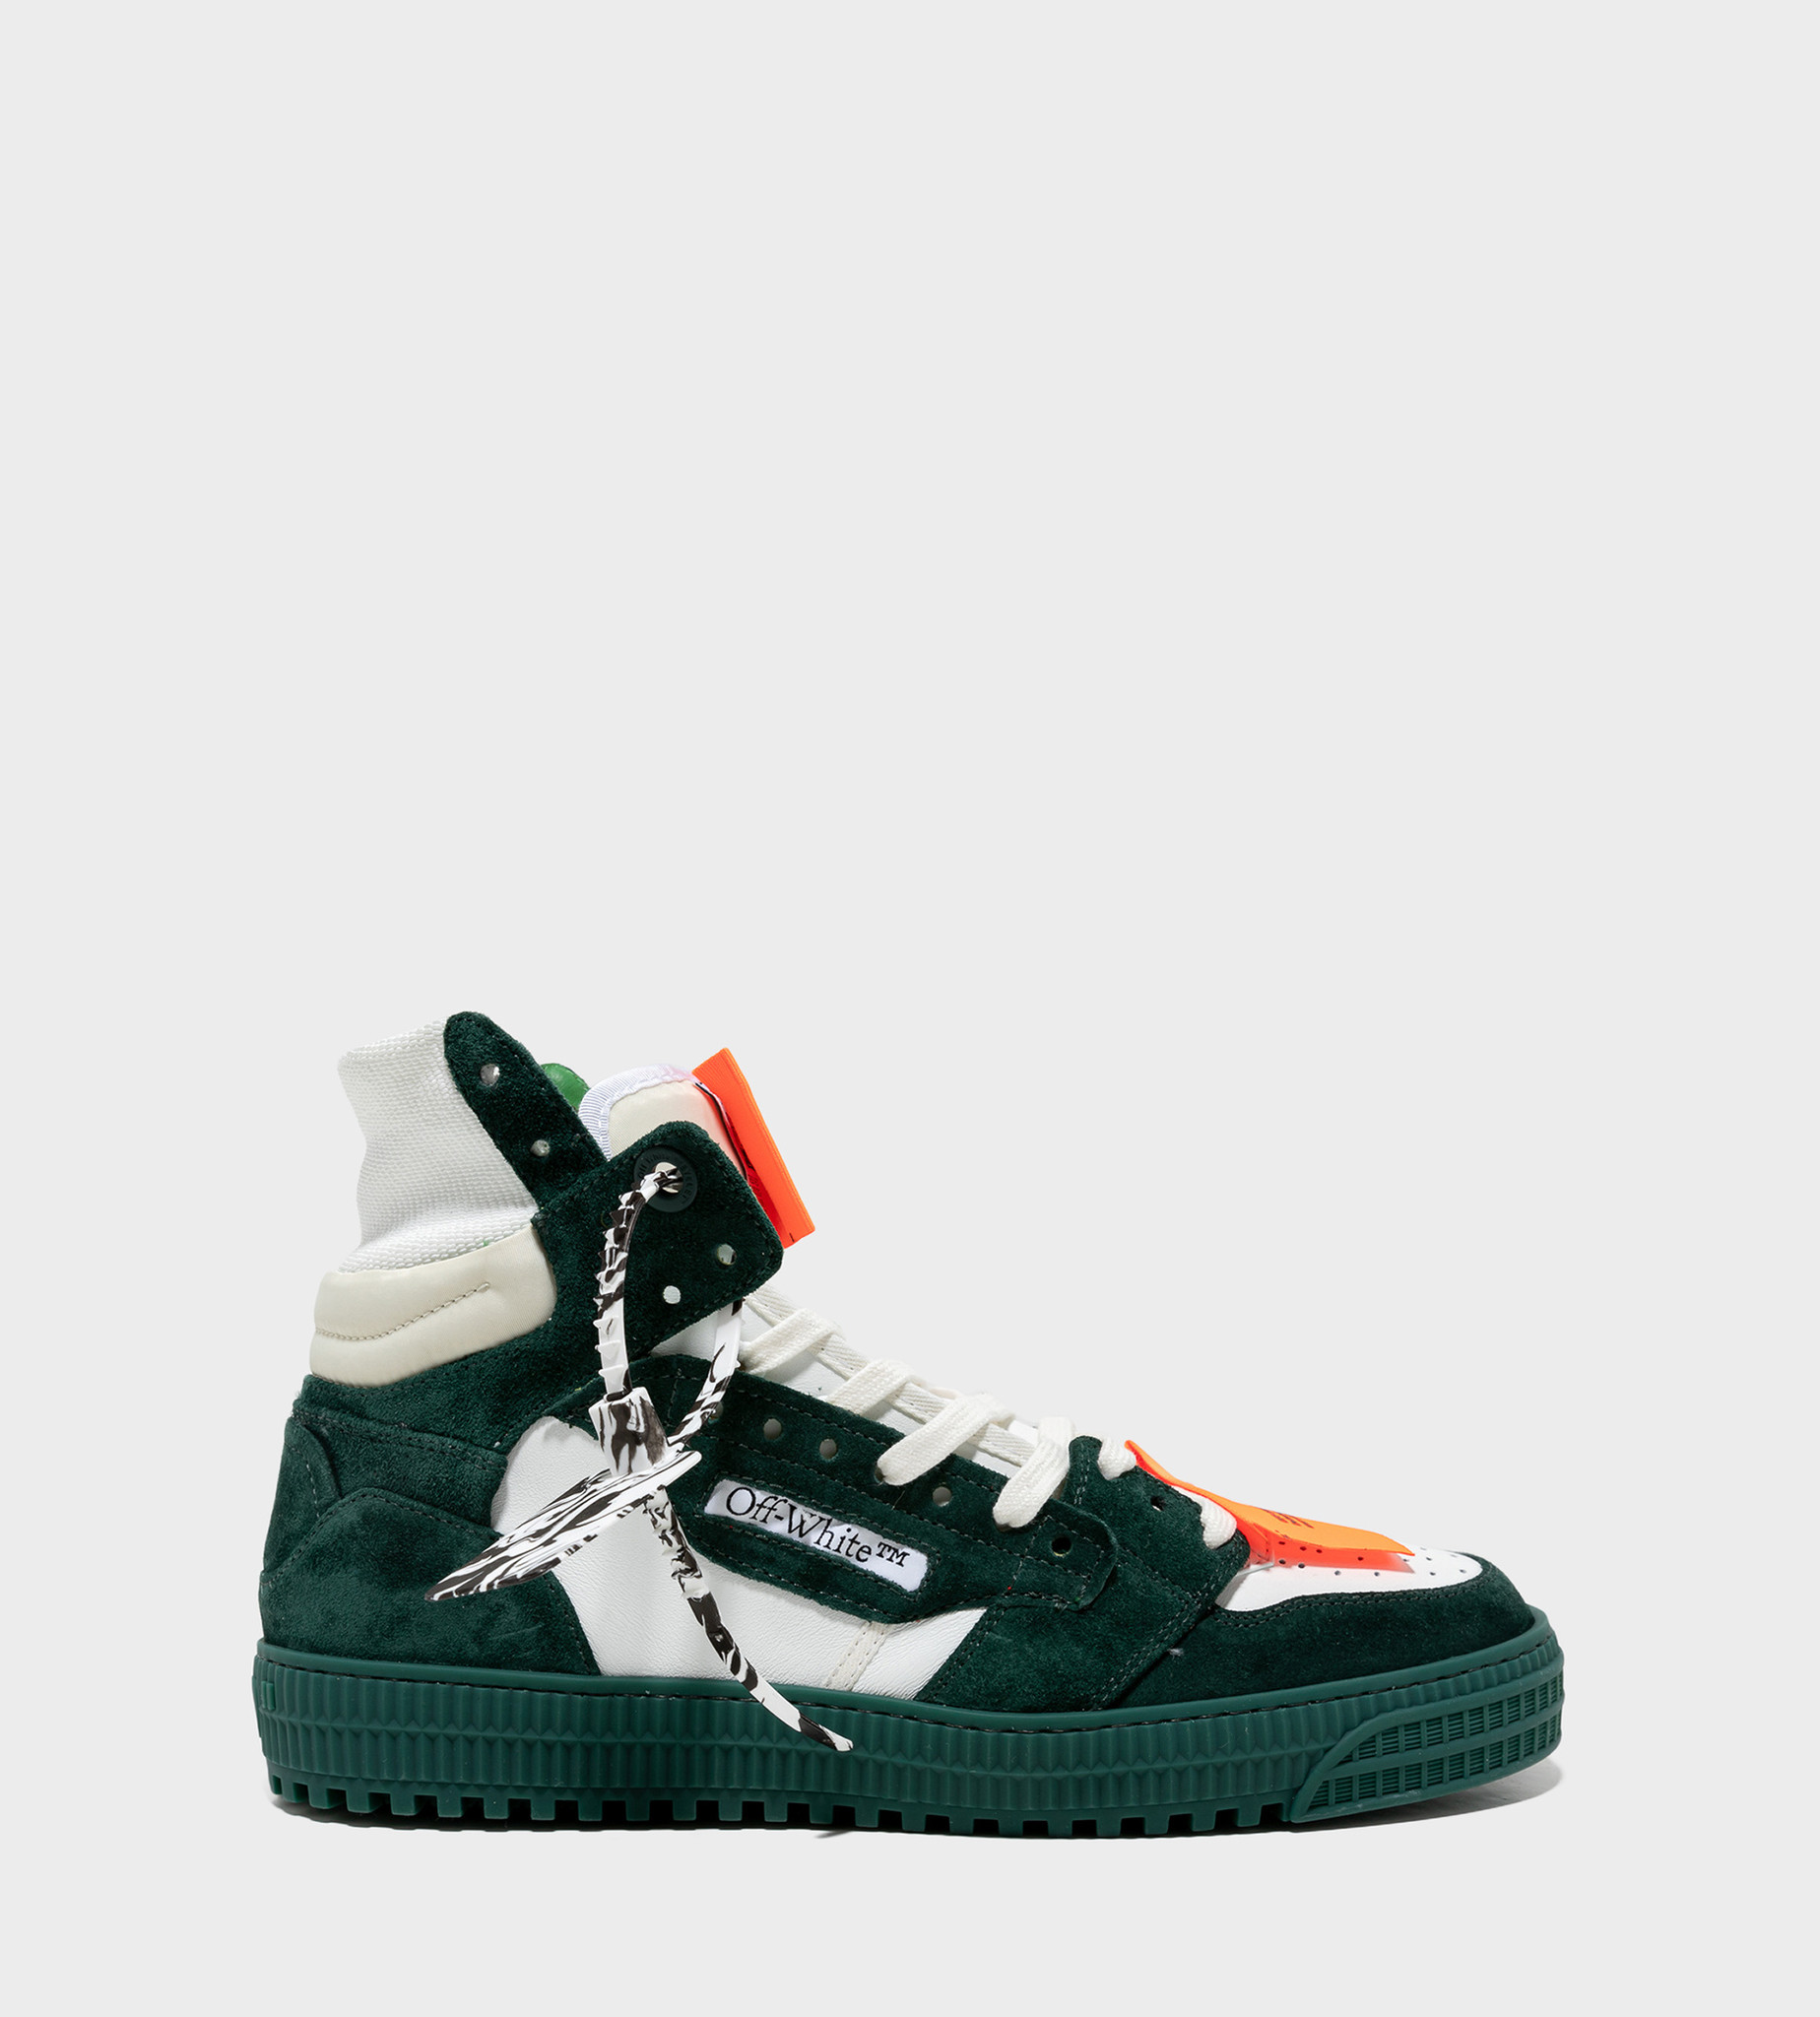 OFF-WHITE Off-Court 3.0 Panelled Sneakers White / Pine Green